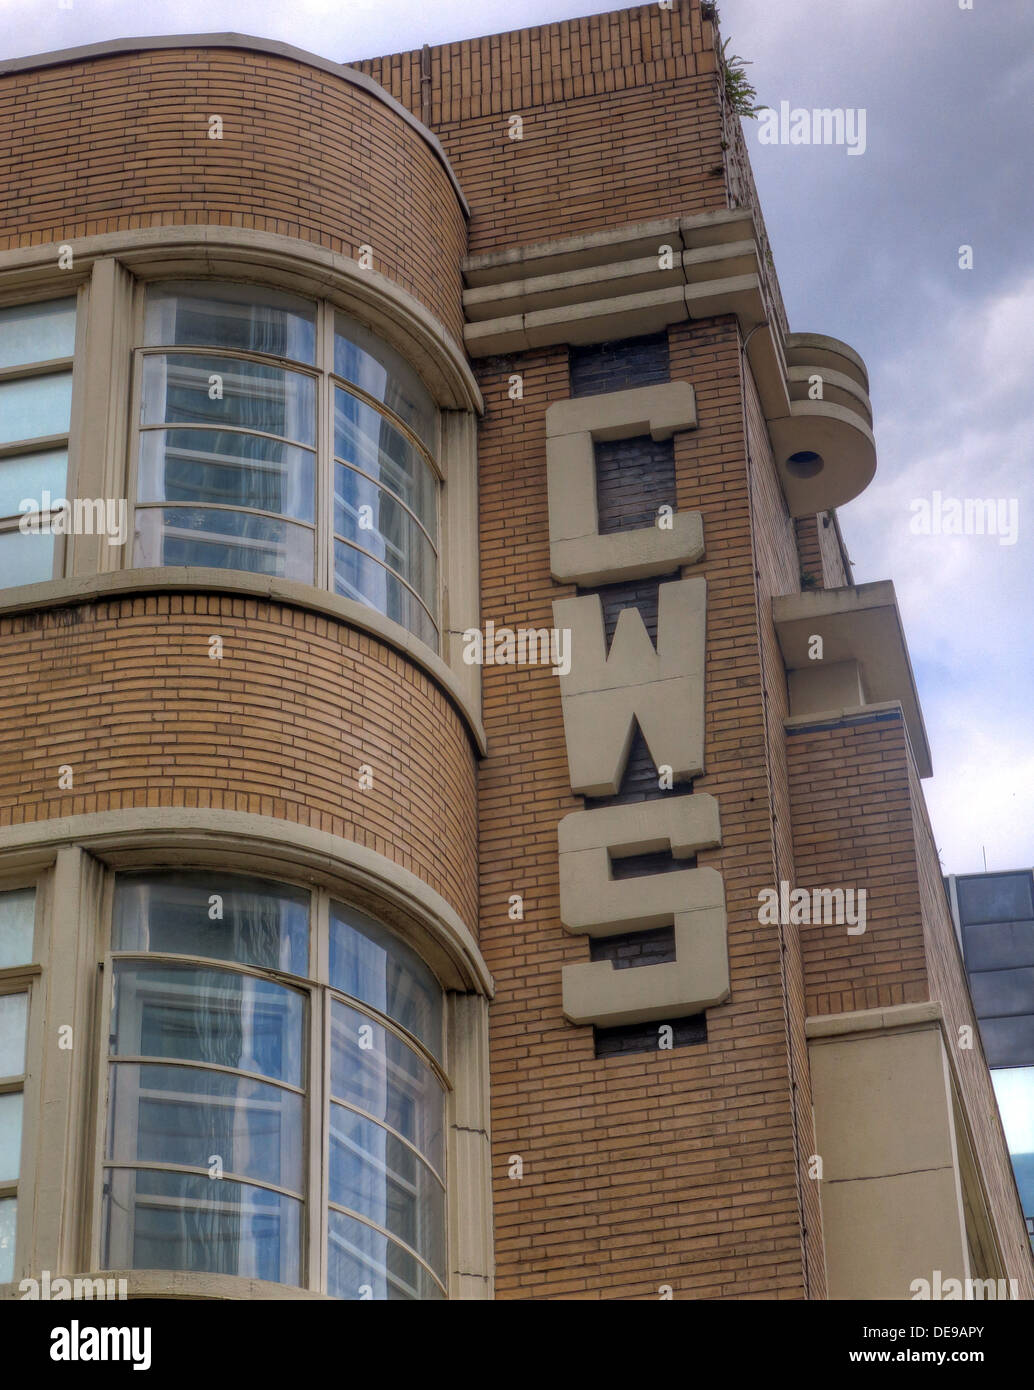 CWS,Co-operative retail Society building, Balloon Street,Manchester,England,UK - Stock Image